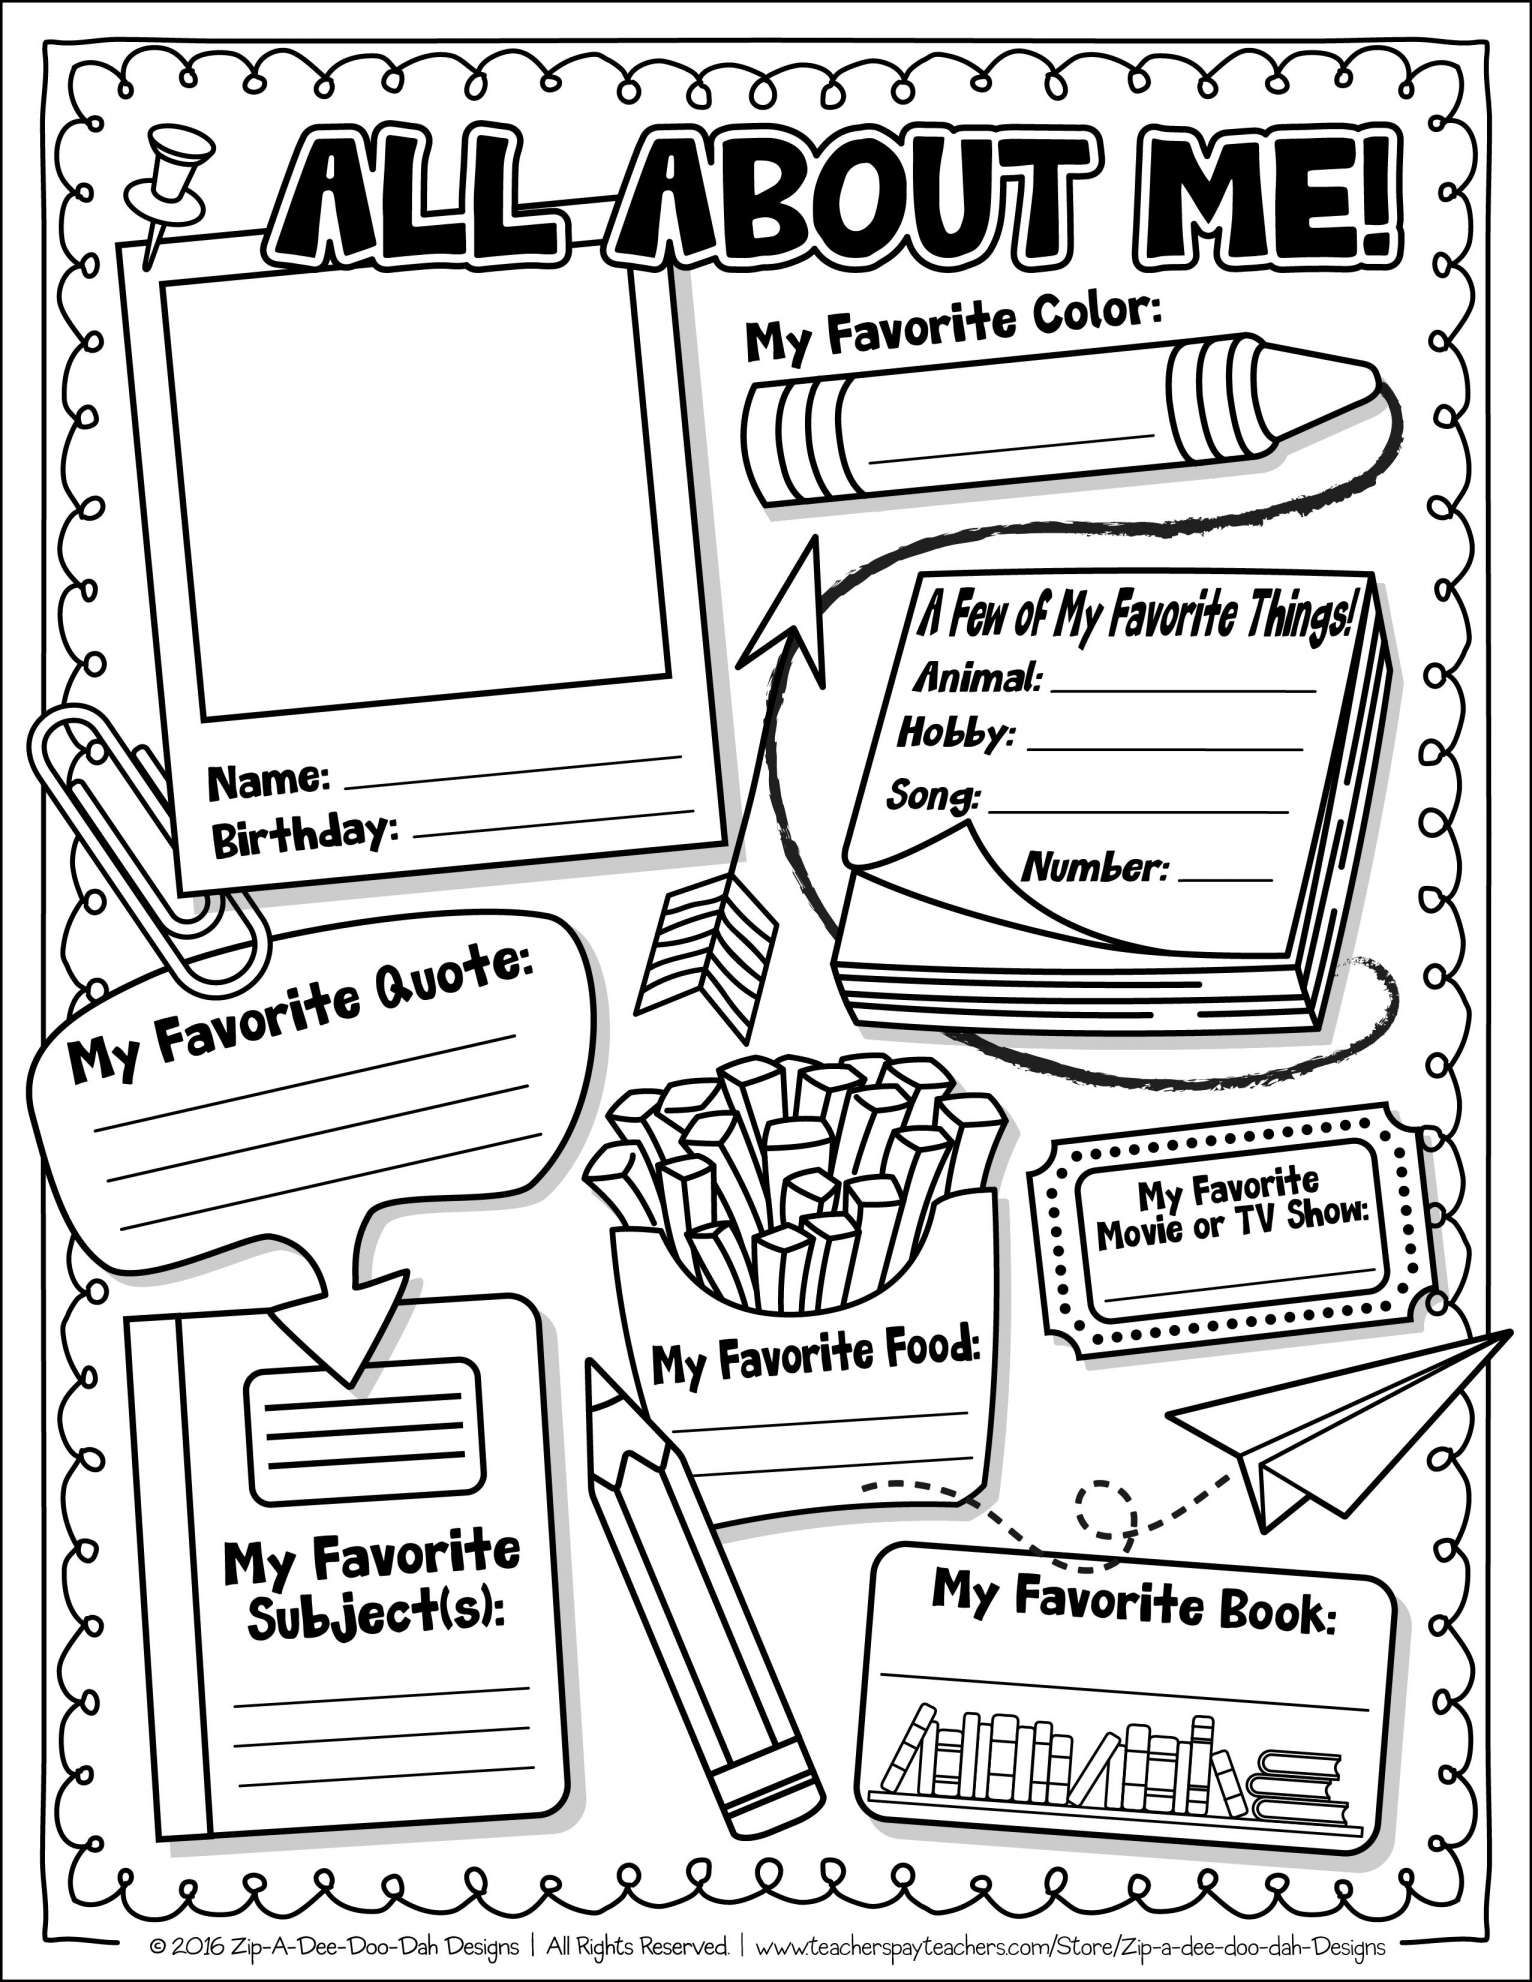 7+ All About Me Worksheet 4Th Grade Free   All about me worksheet [ 1982 x 1532 Pixel ]